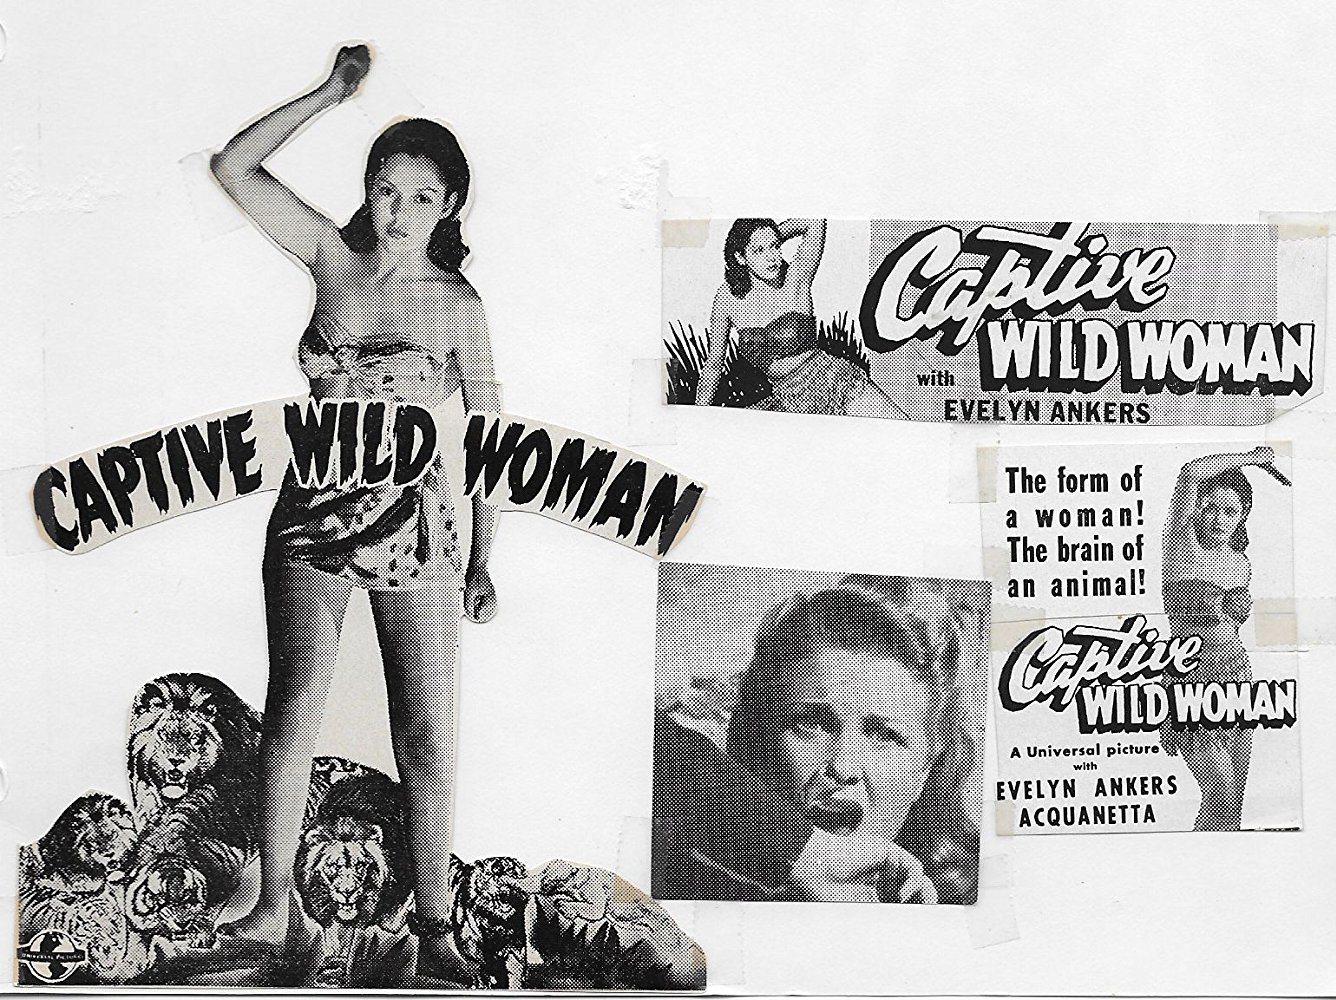 """a poster for the 1943 movie """"Captive Wild Woman,"""" co-starring Acquanetta."""